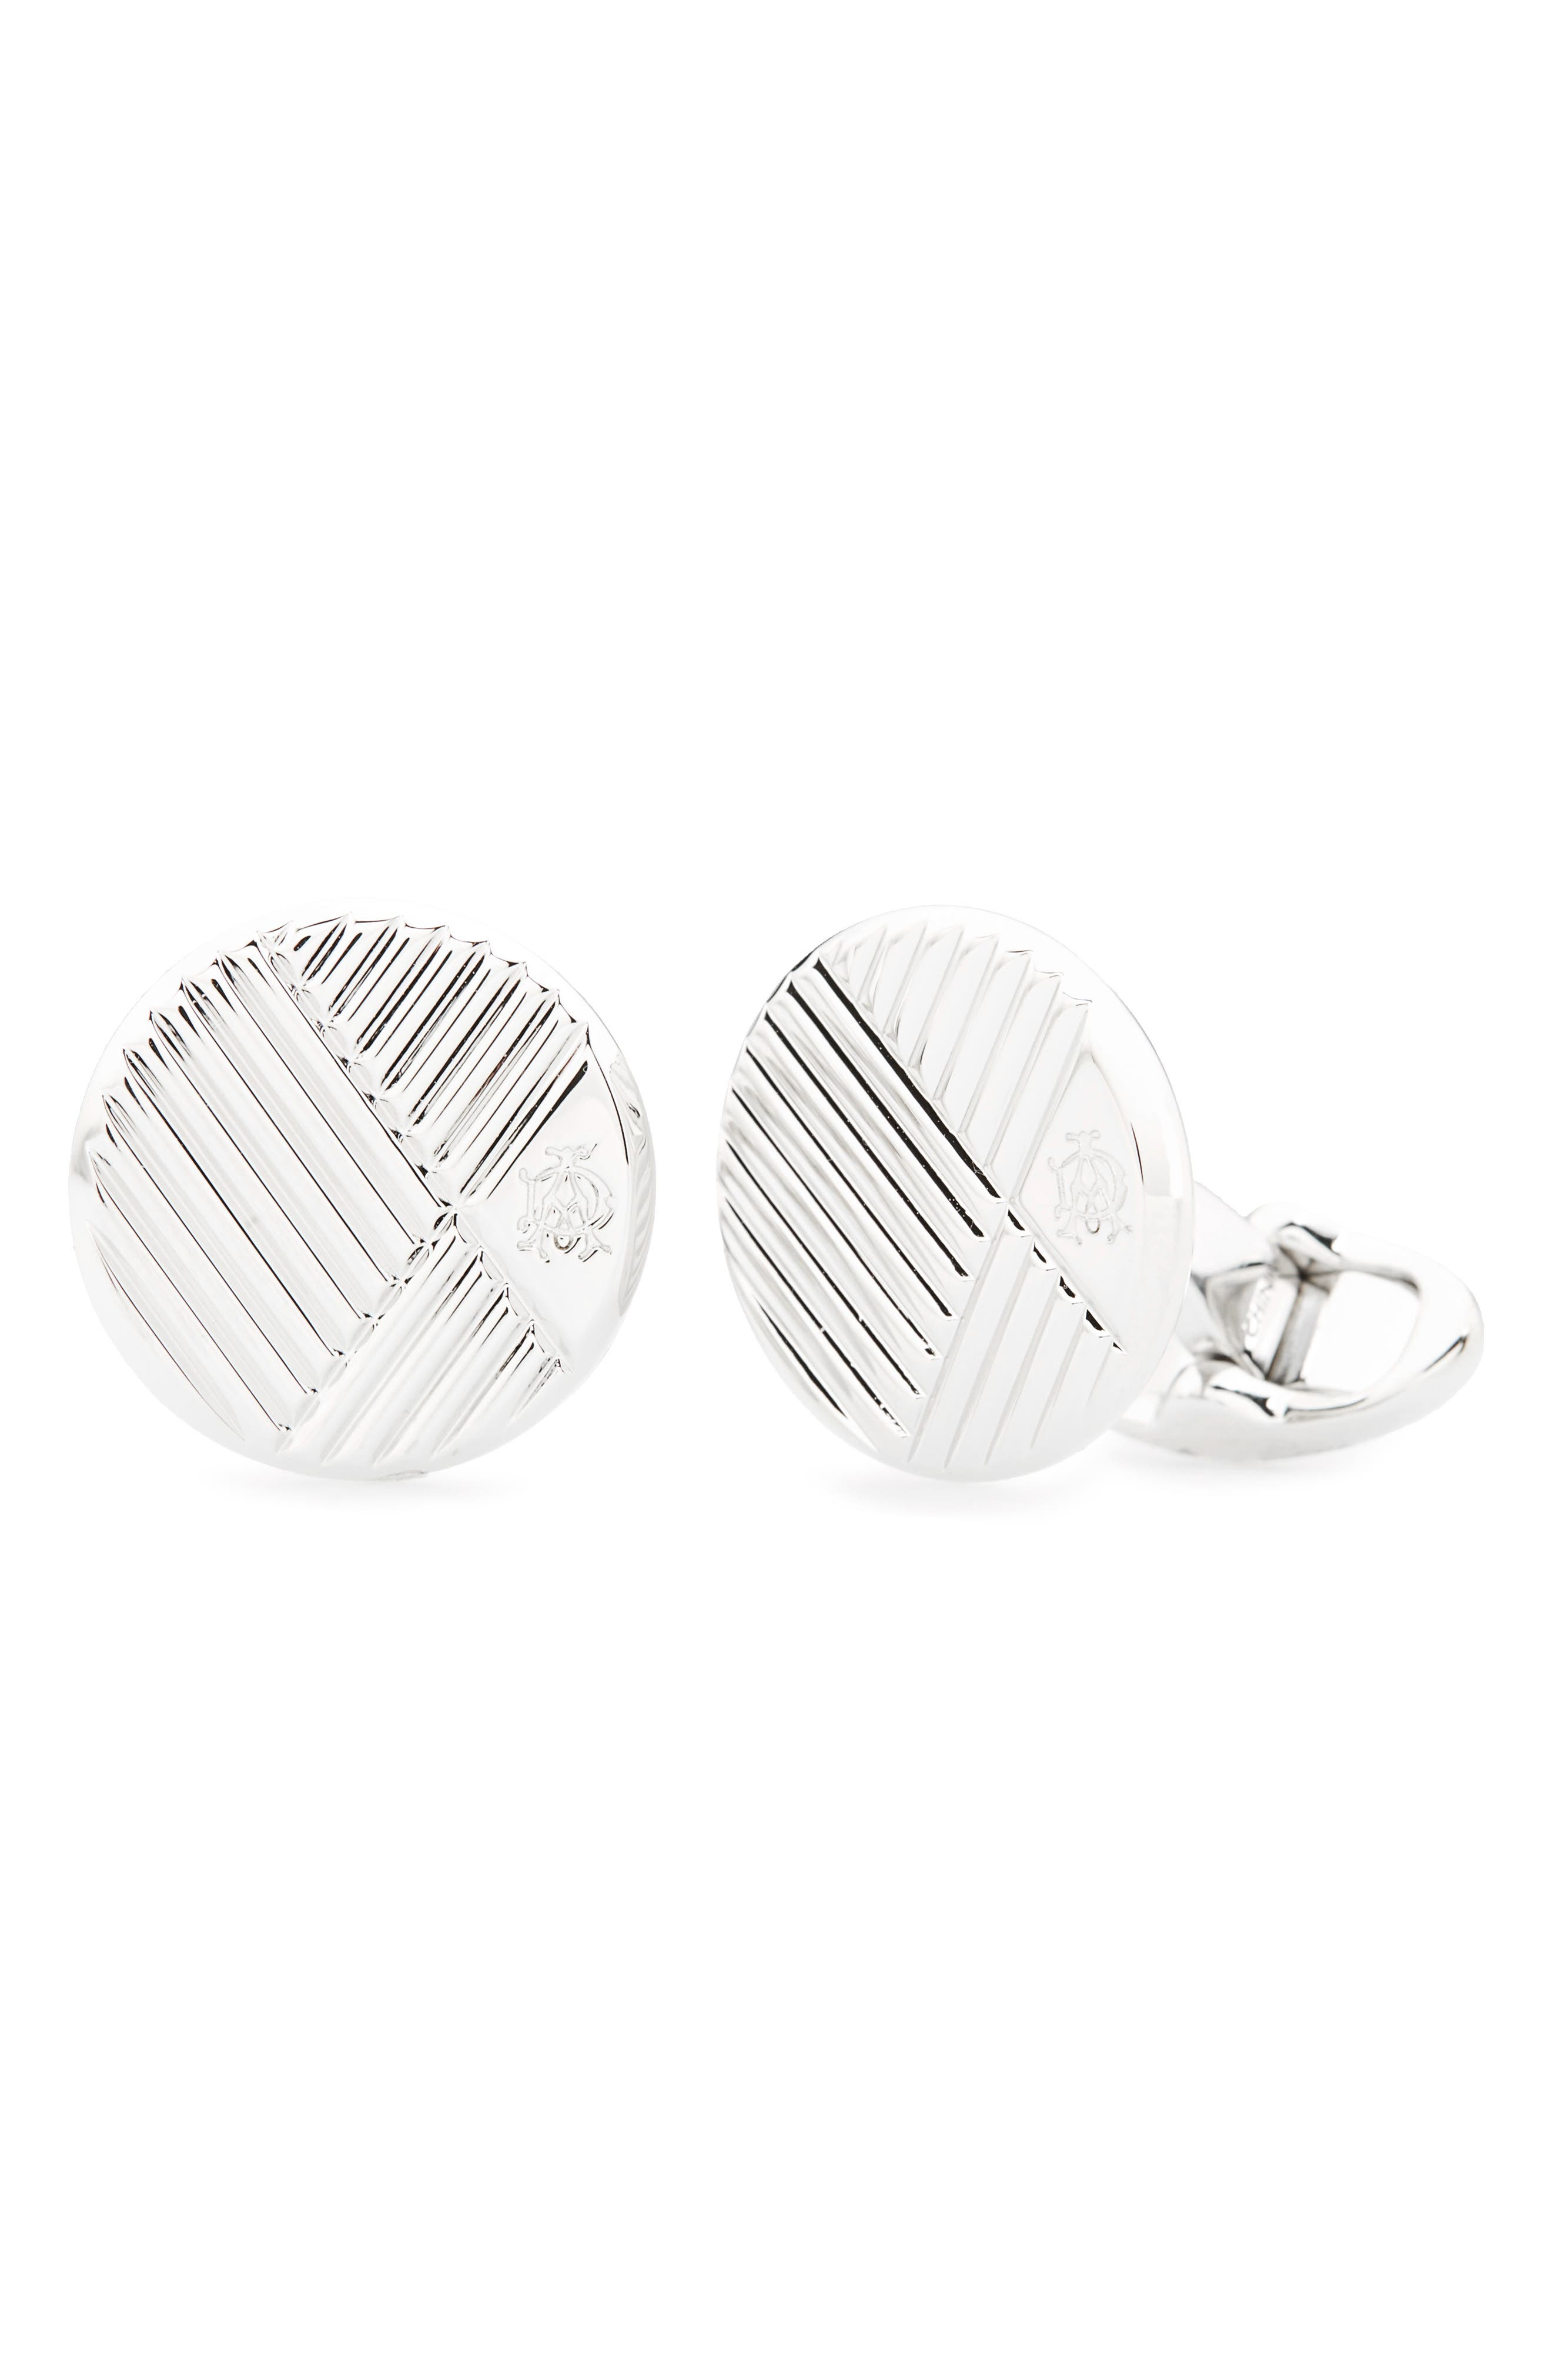 Round Diagonal Cuff Links,                         Main,                         color, Silver